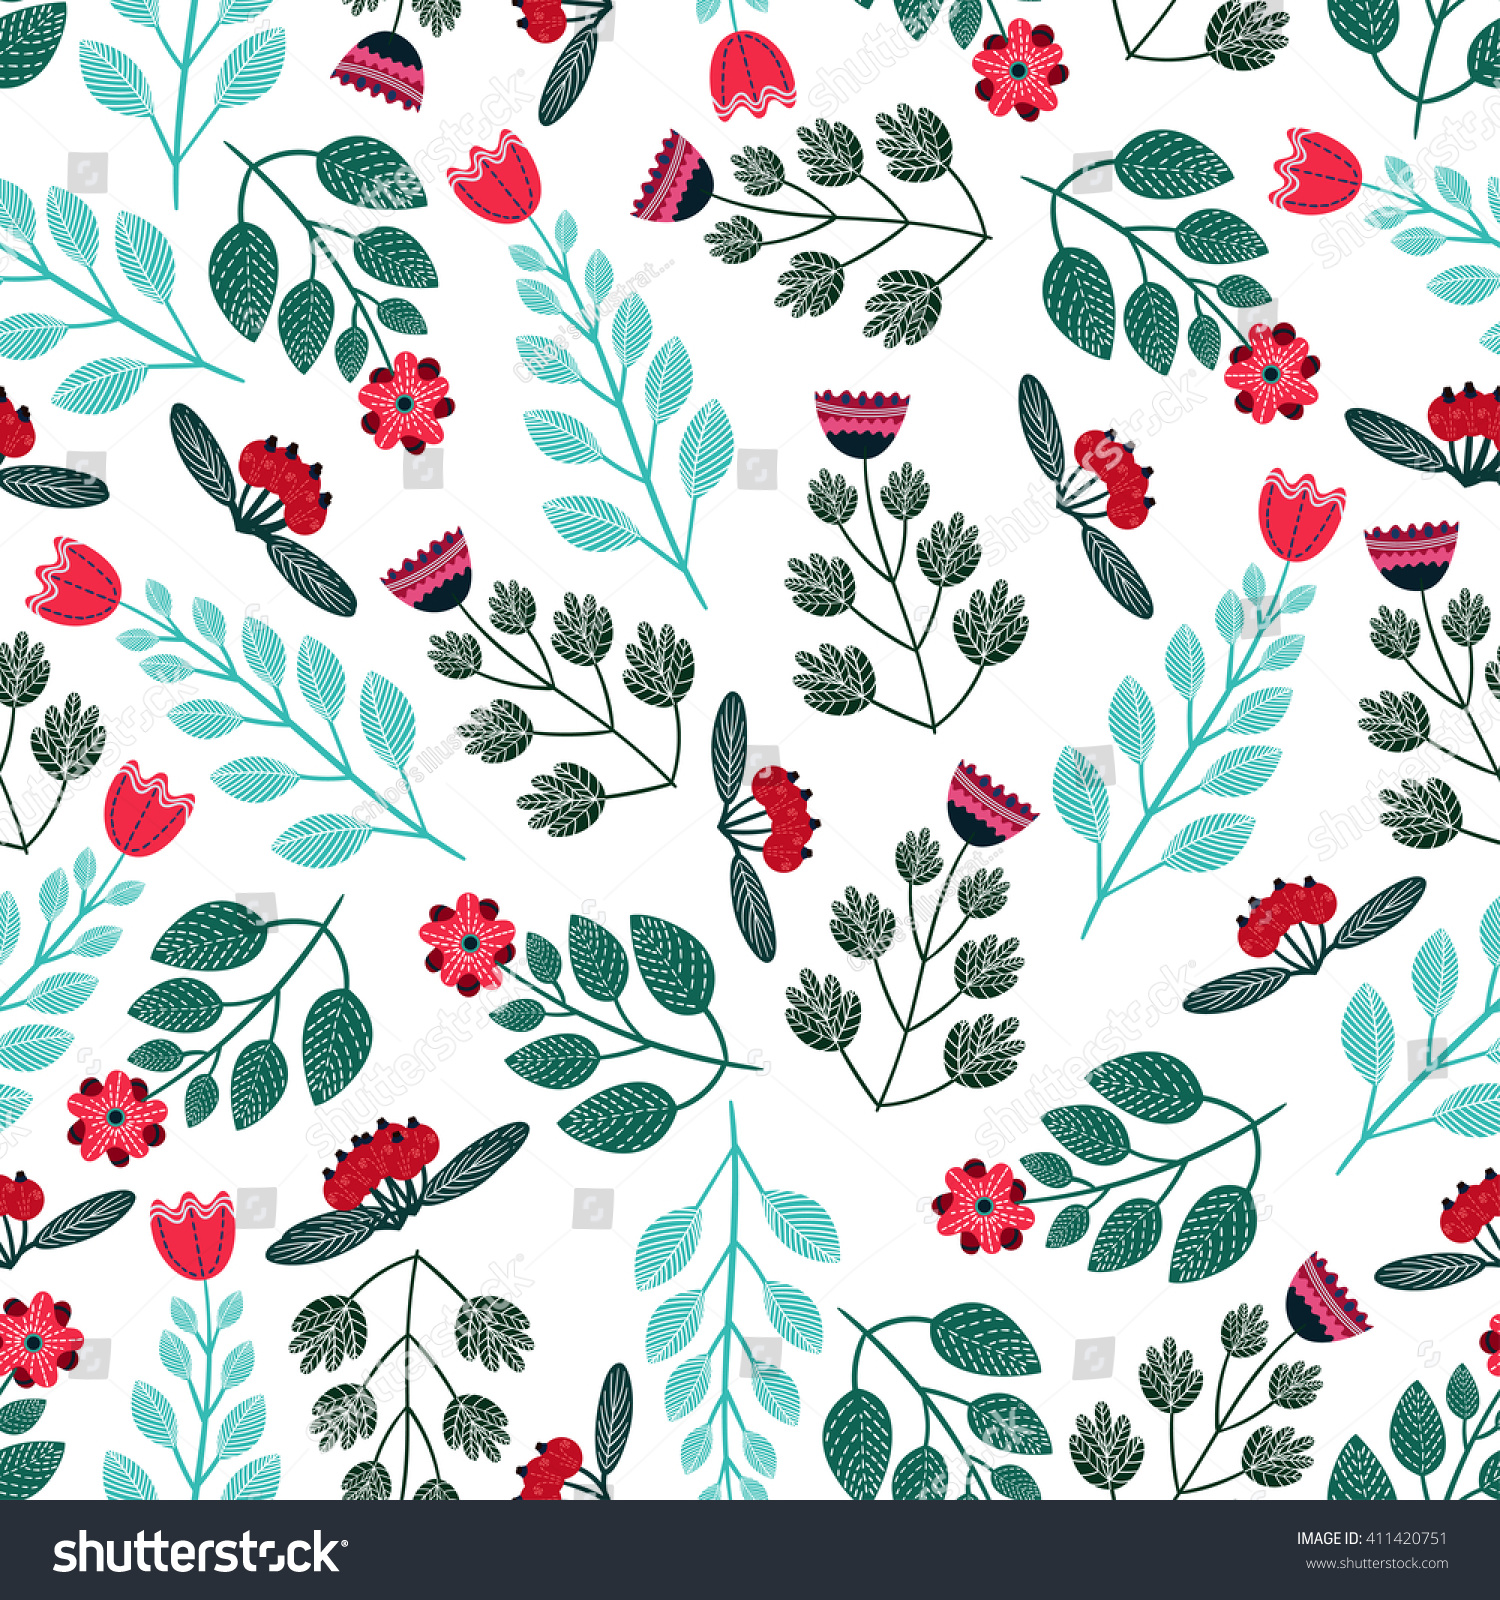 stock-vector-colorful-vintage-flowers-ve